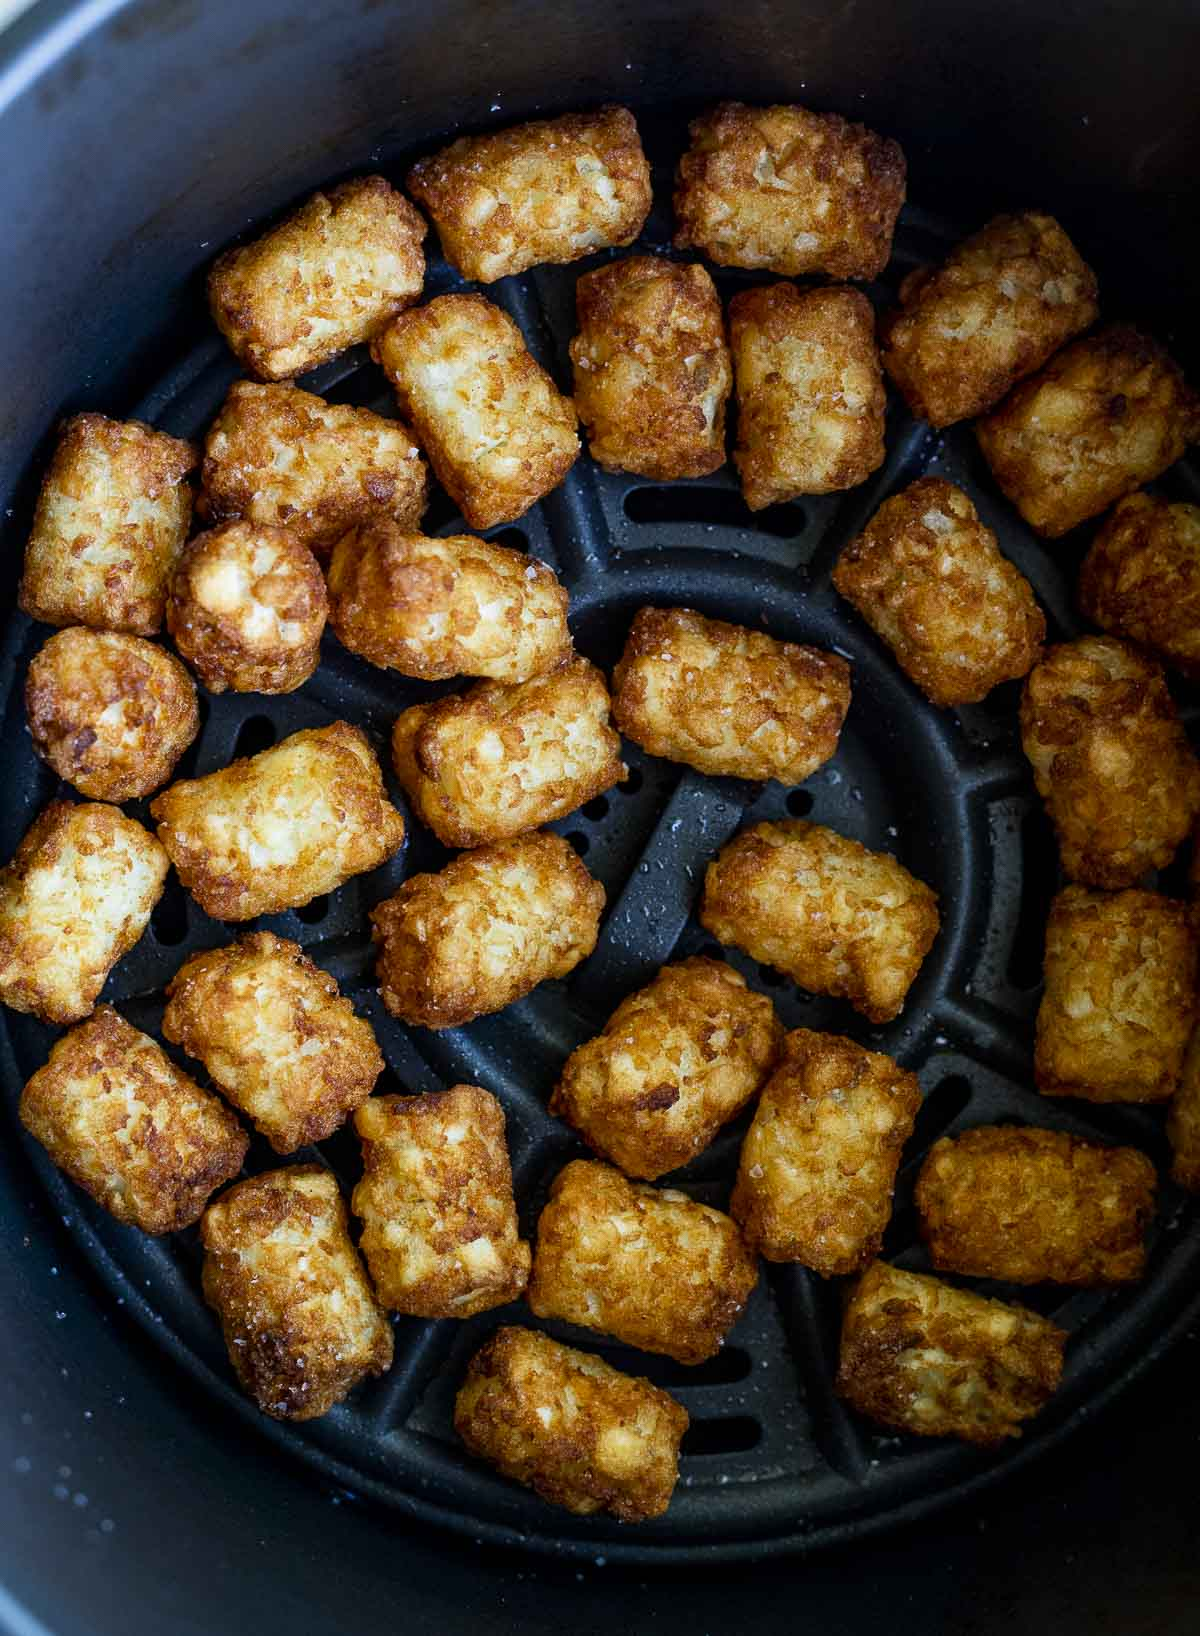 Tater tots in the air fryer.